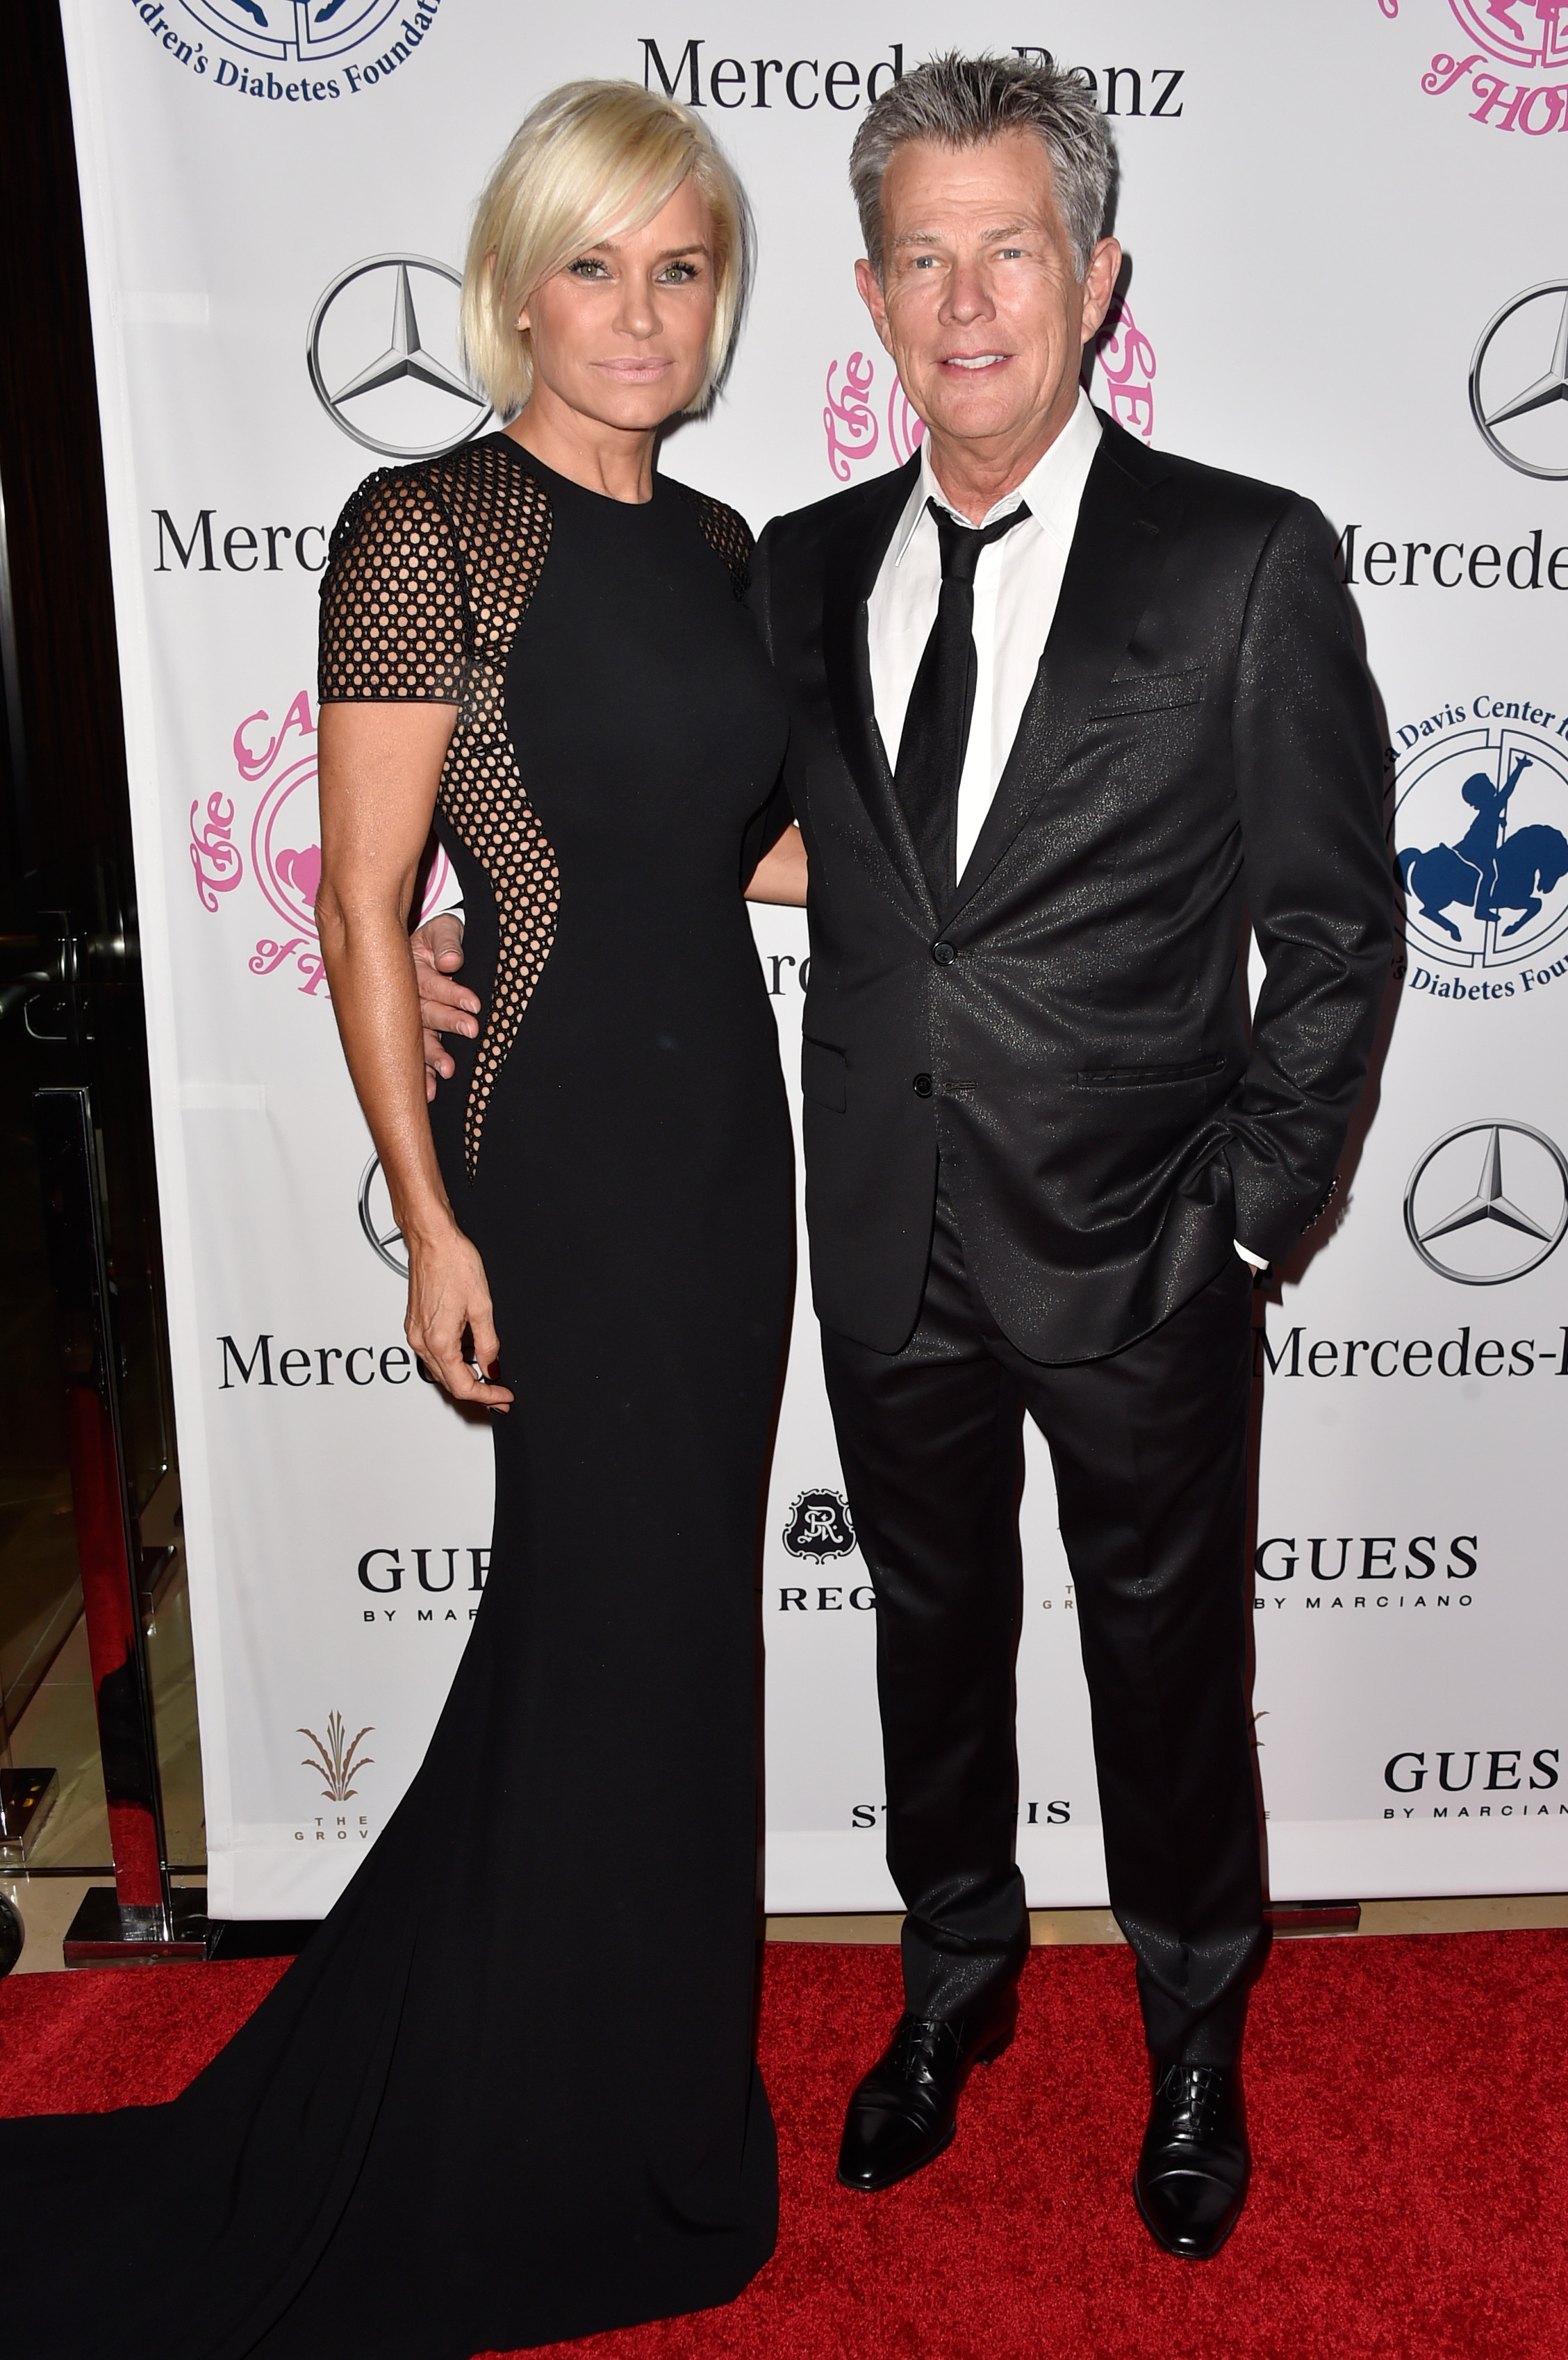 The Real Reason Yolanda Hadid And David Foster Divorced